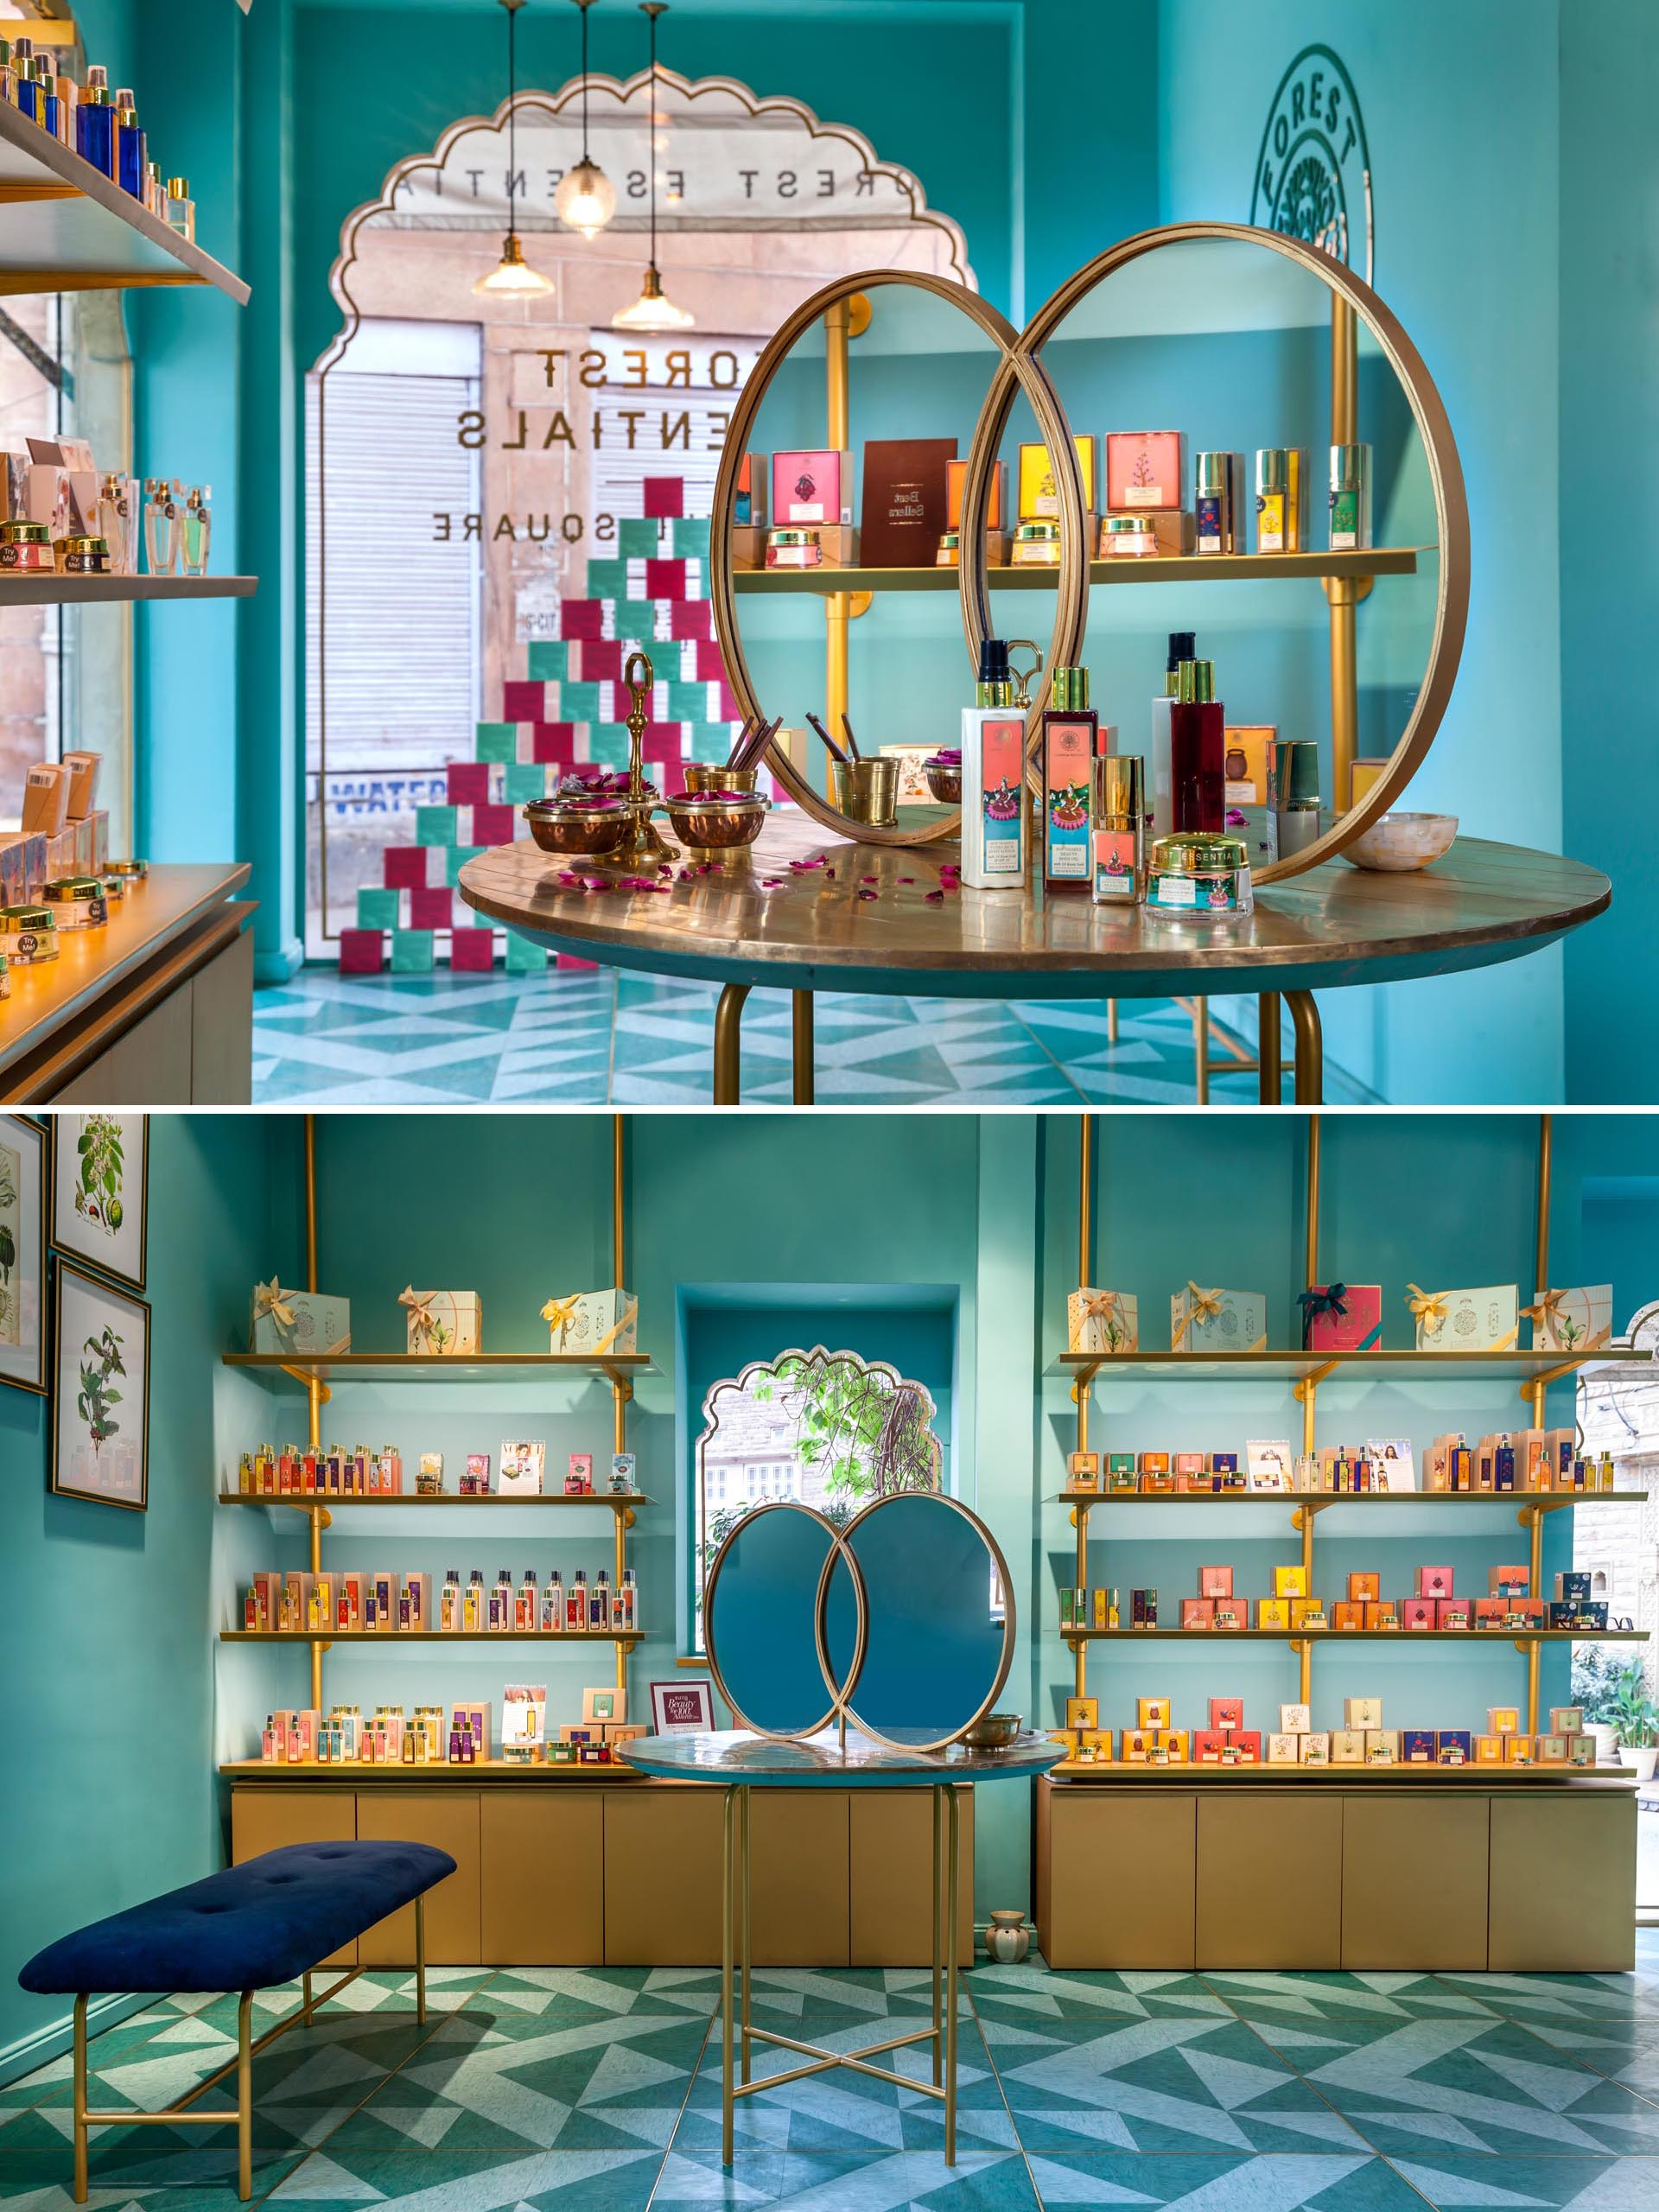 A modern retail store with bright teal blue/green walls and gold accents.